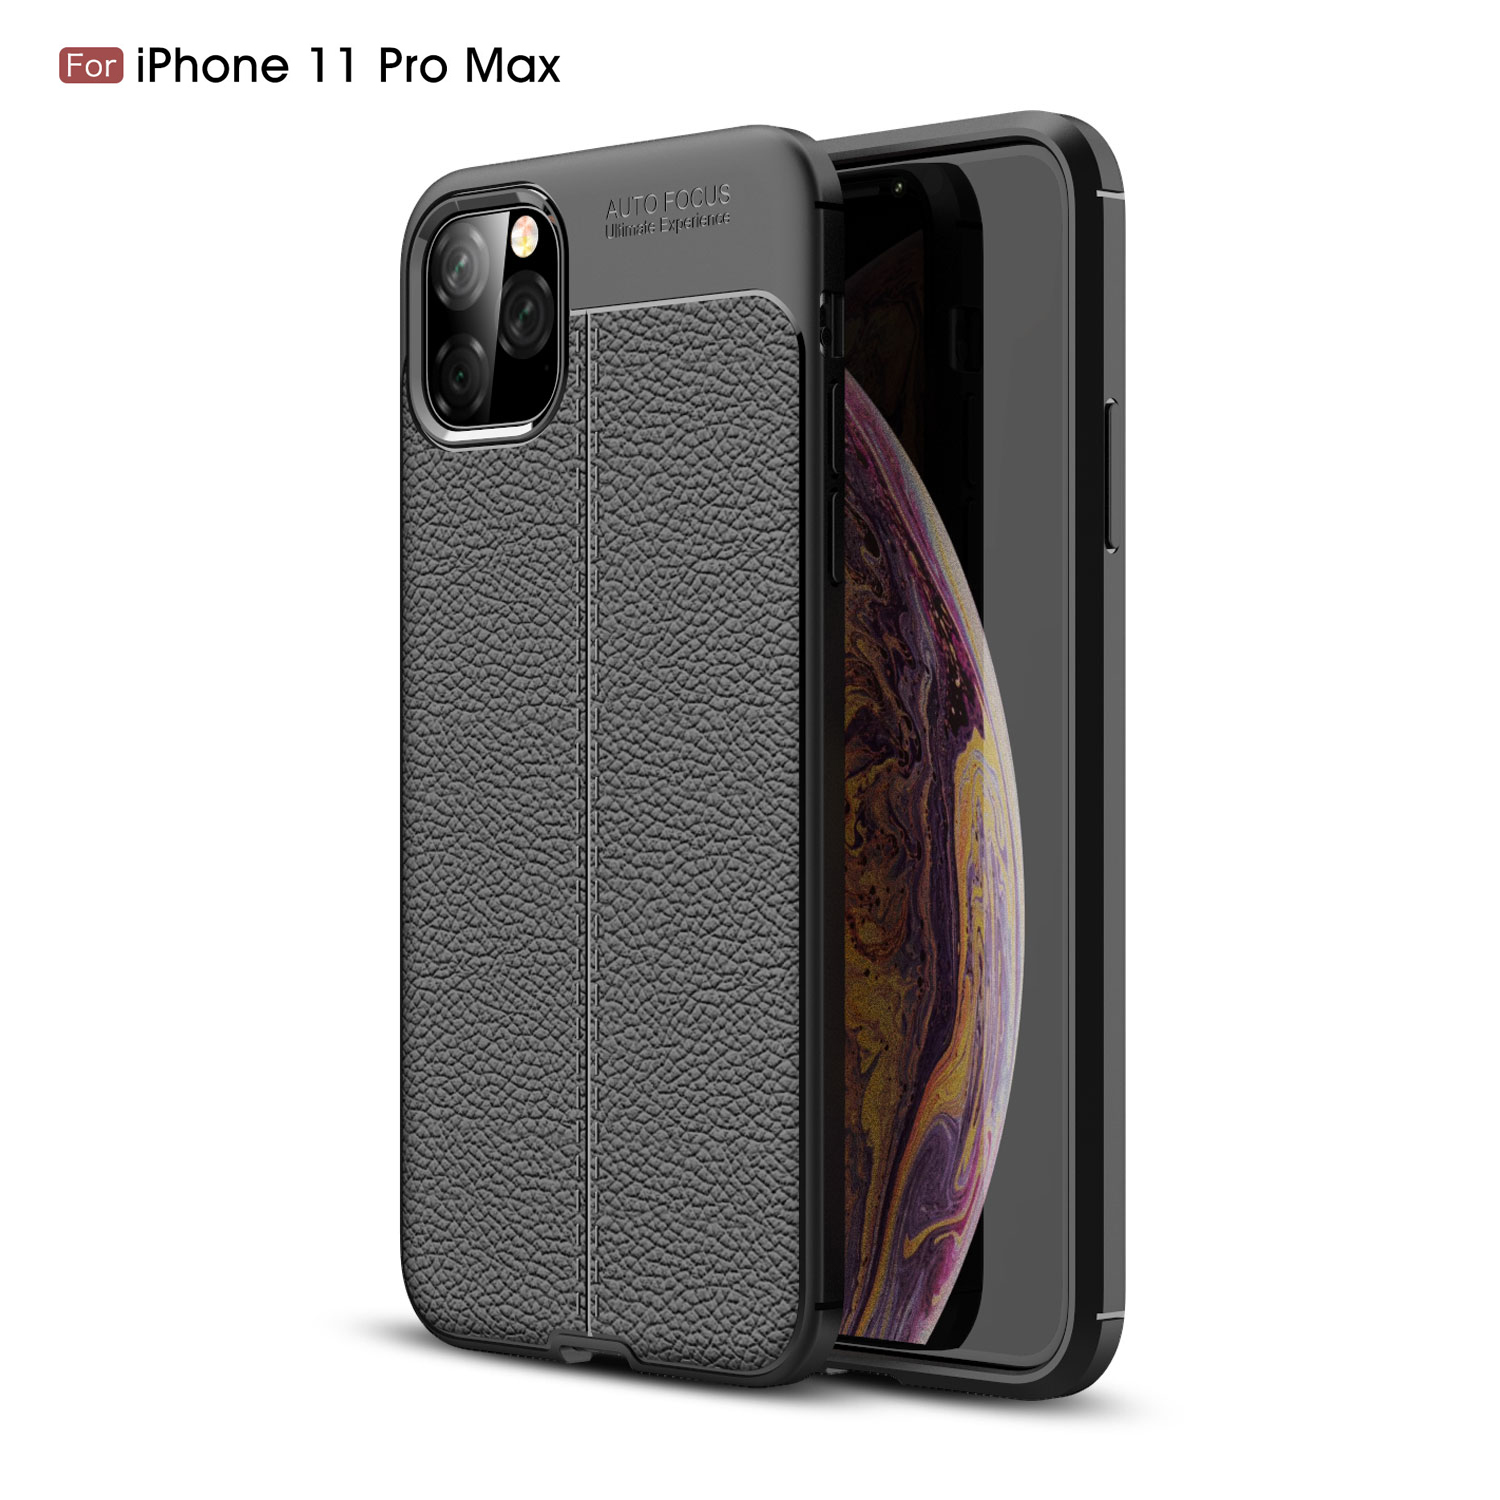 H679aa857432f43458340fabd7562edbdm For iPhone 11 Pro Max Case 7 8 5S 6S Plus XR XS SE Apple Case Luxury Leather PU Soft Silicone Phone Back Cover For iPhone 11 Pro